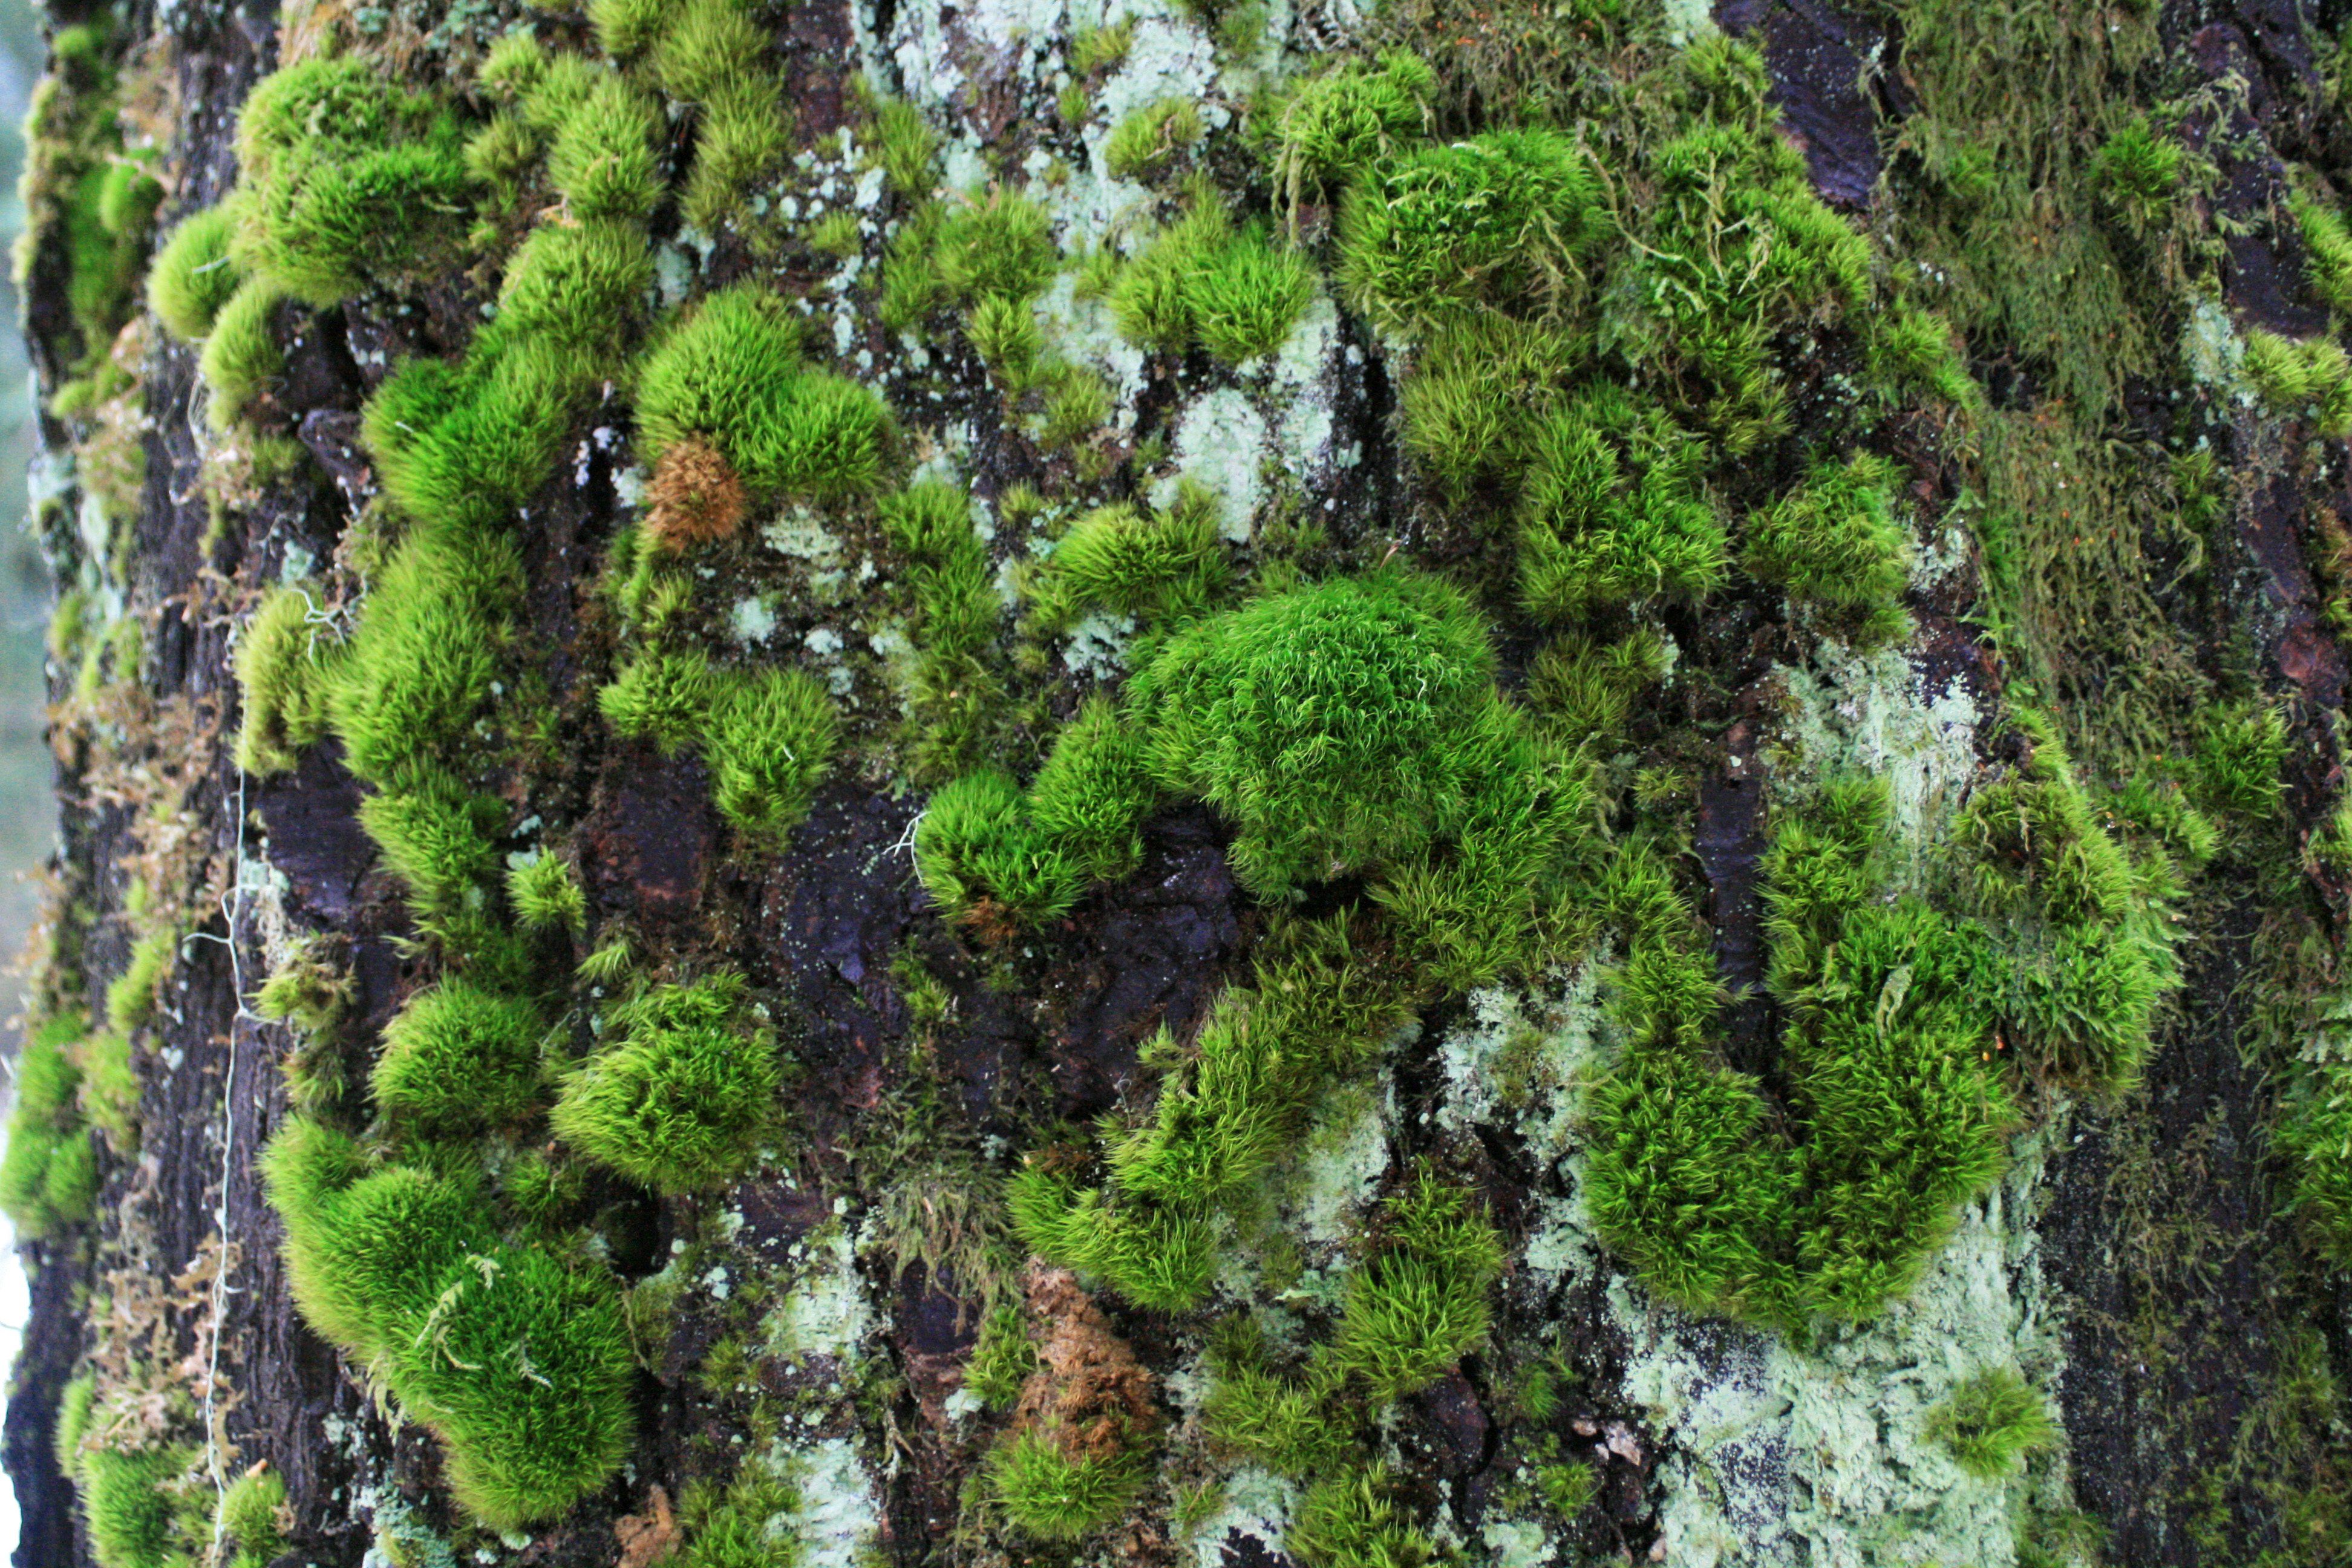 Patches of bright green moss on tree trunk